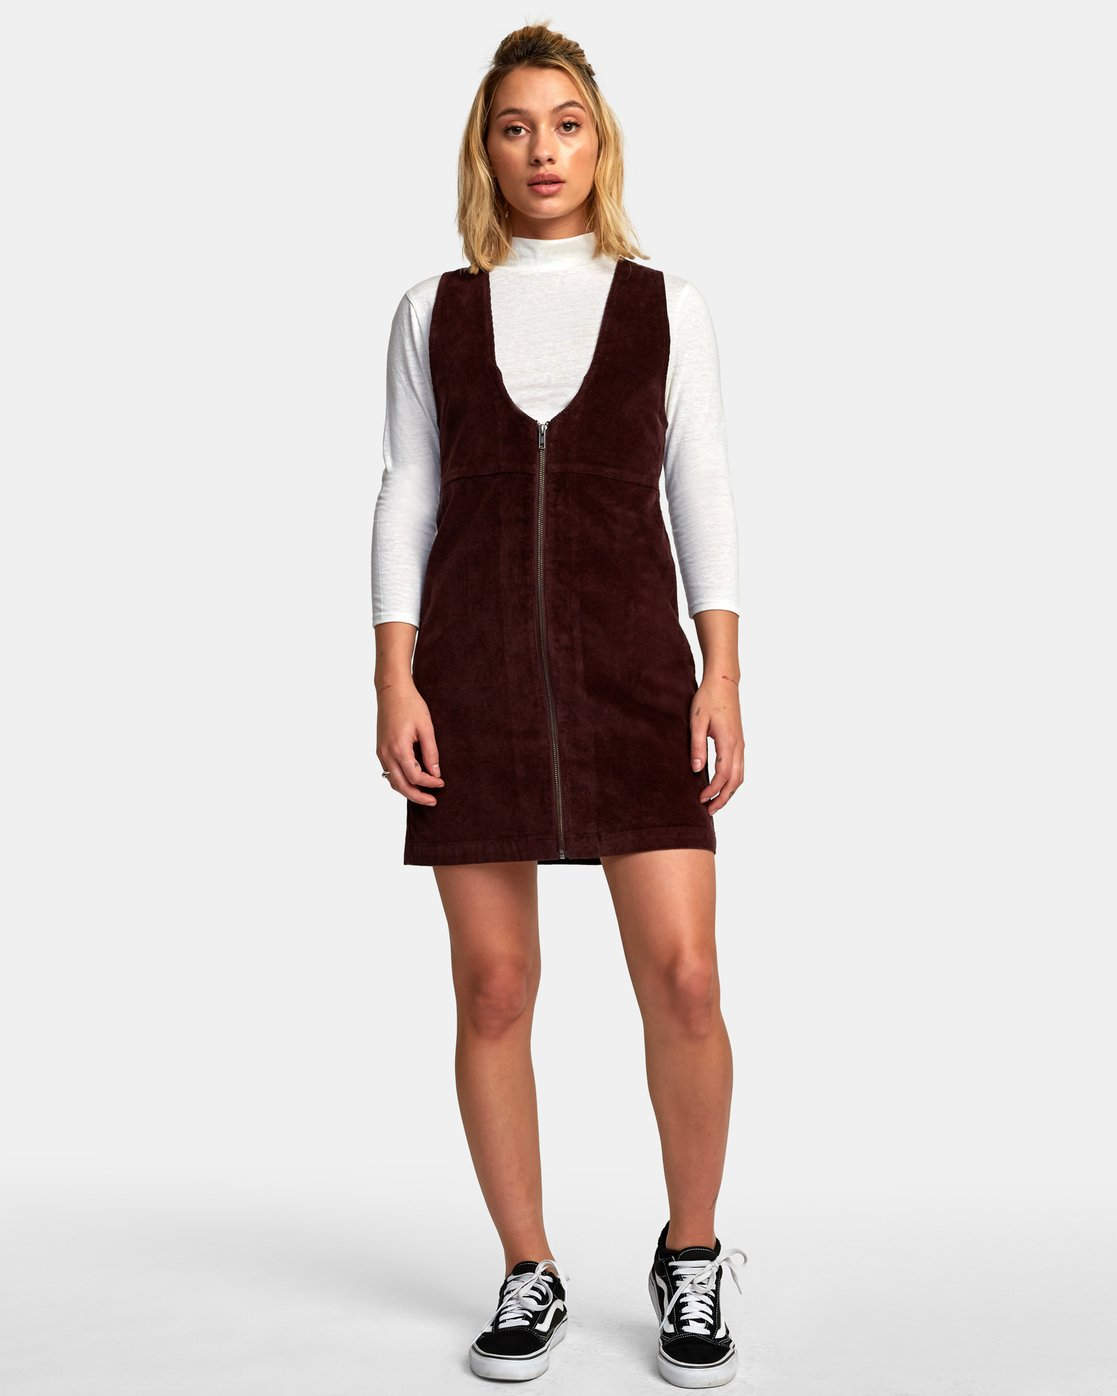 5 North Corduroy Jumper Dress  WD11WRFU RVCA